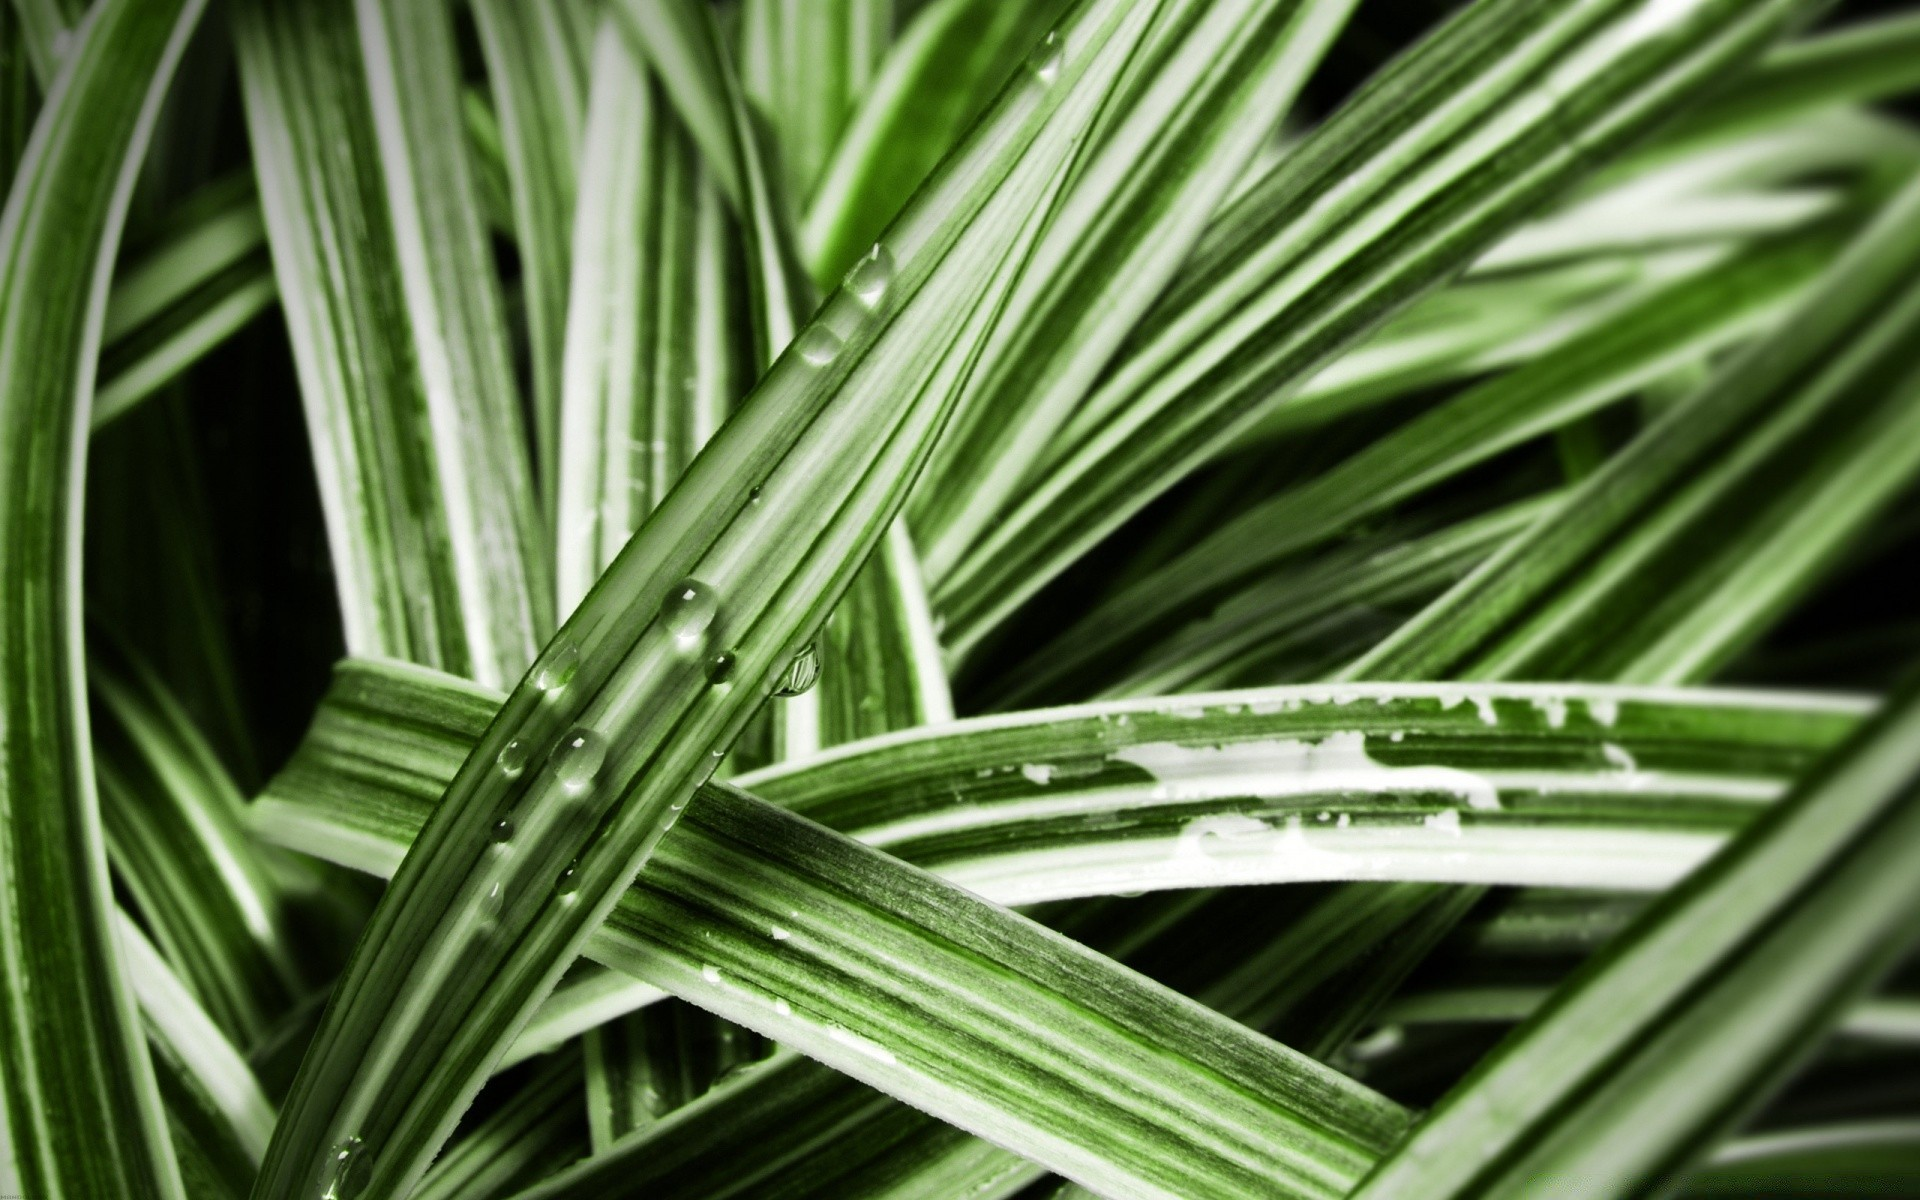 Grass Blades Android Wallpapers